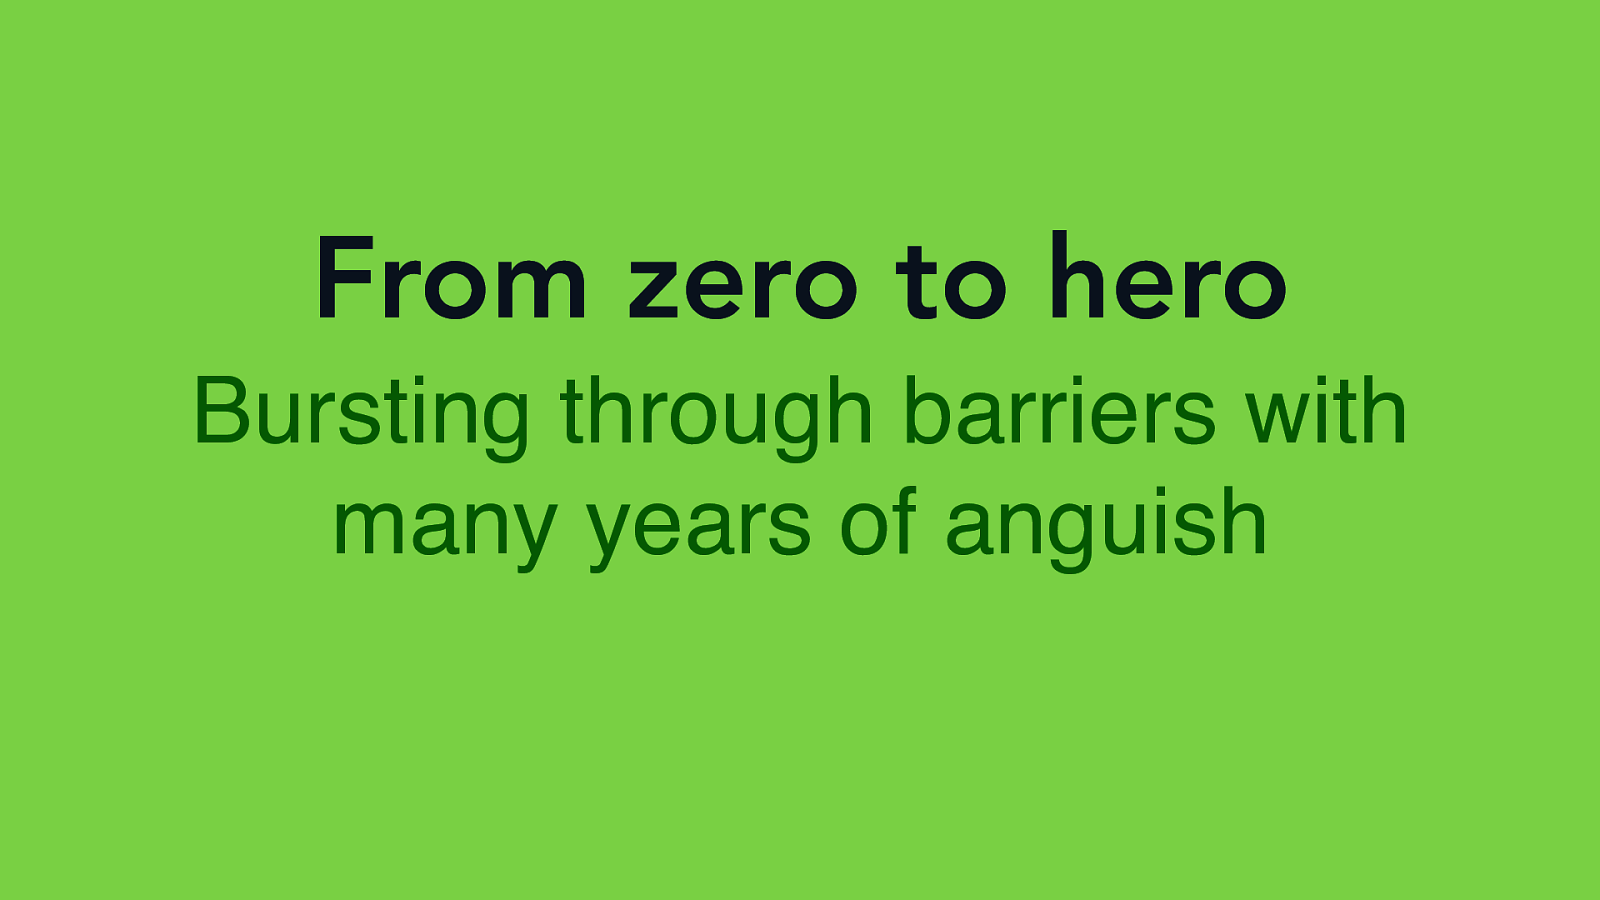 From Zero to Hero with several years of Anguish - Bursting through barriers